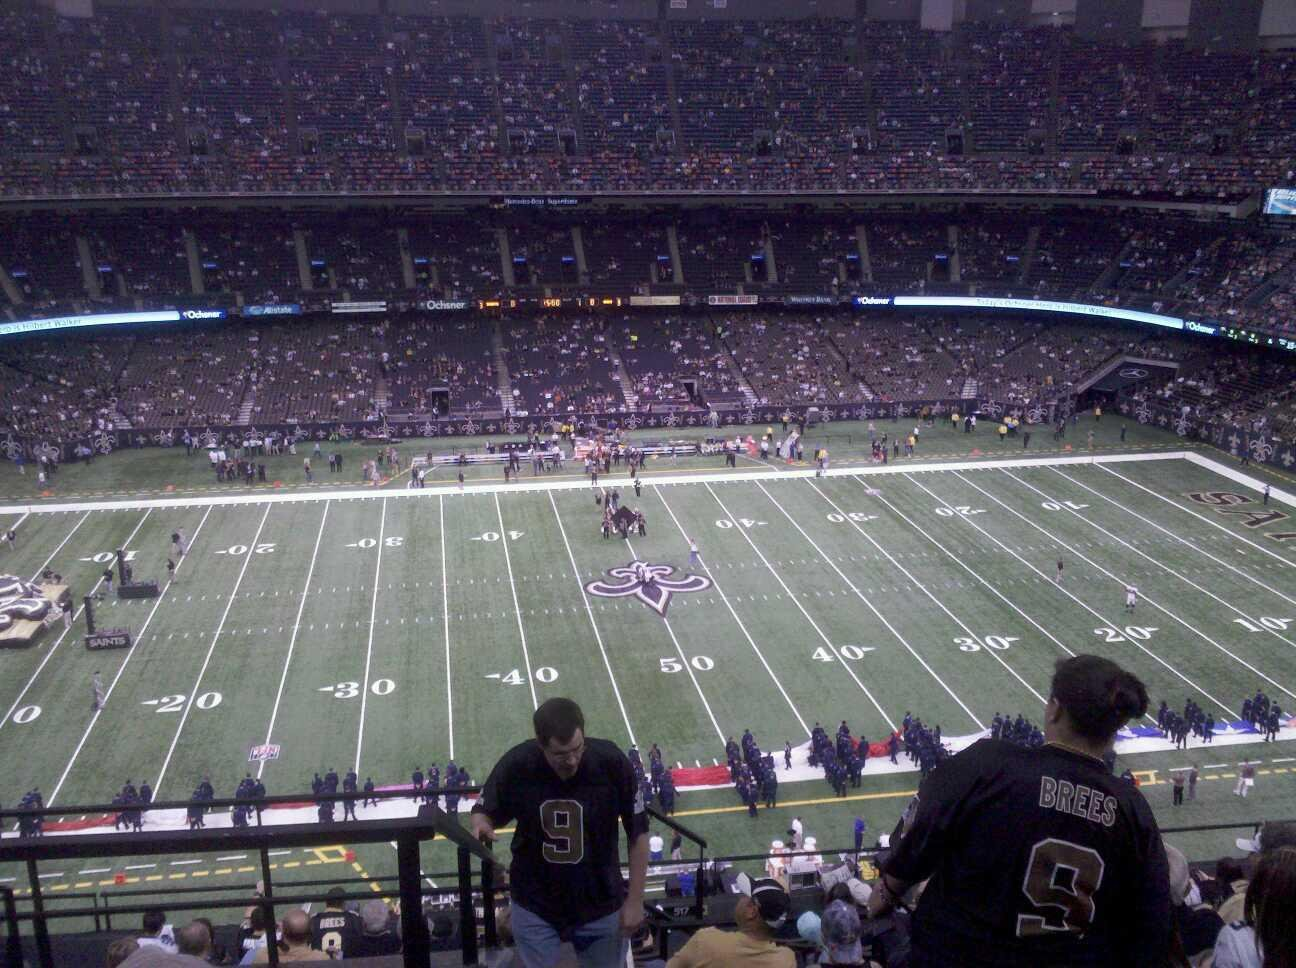 Mercedes-Benz Superdome Section 615 Row 13 Seat 18